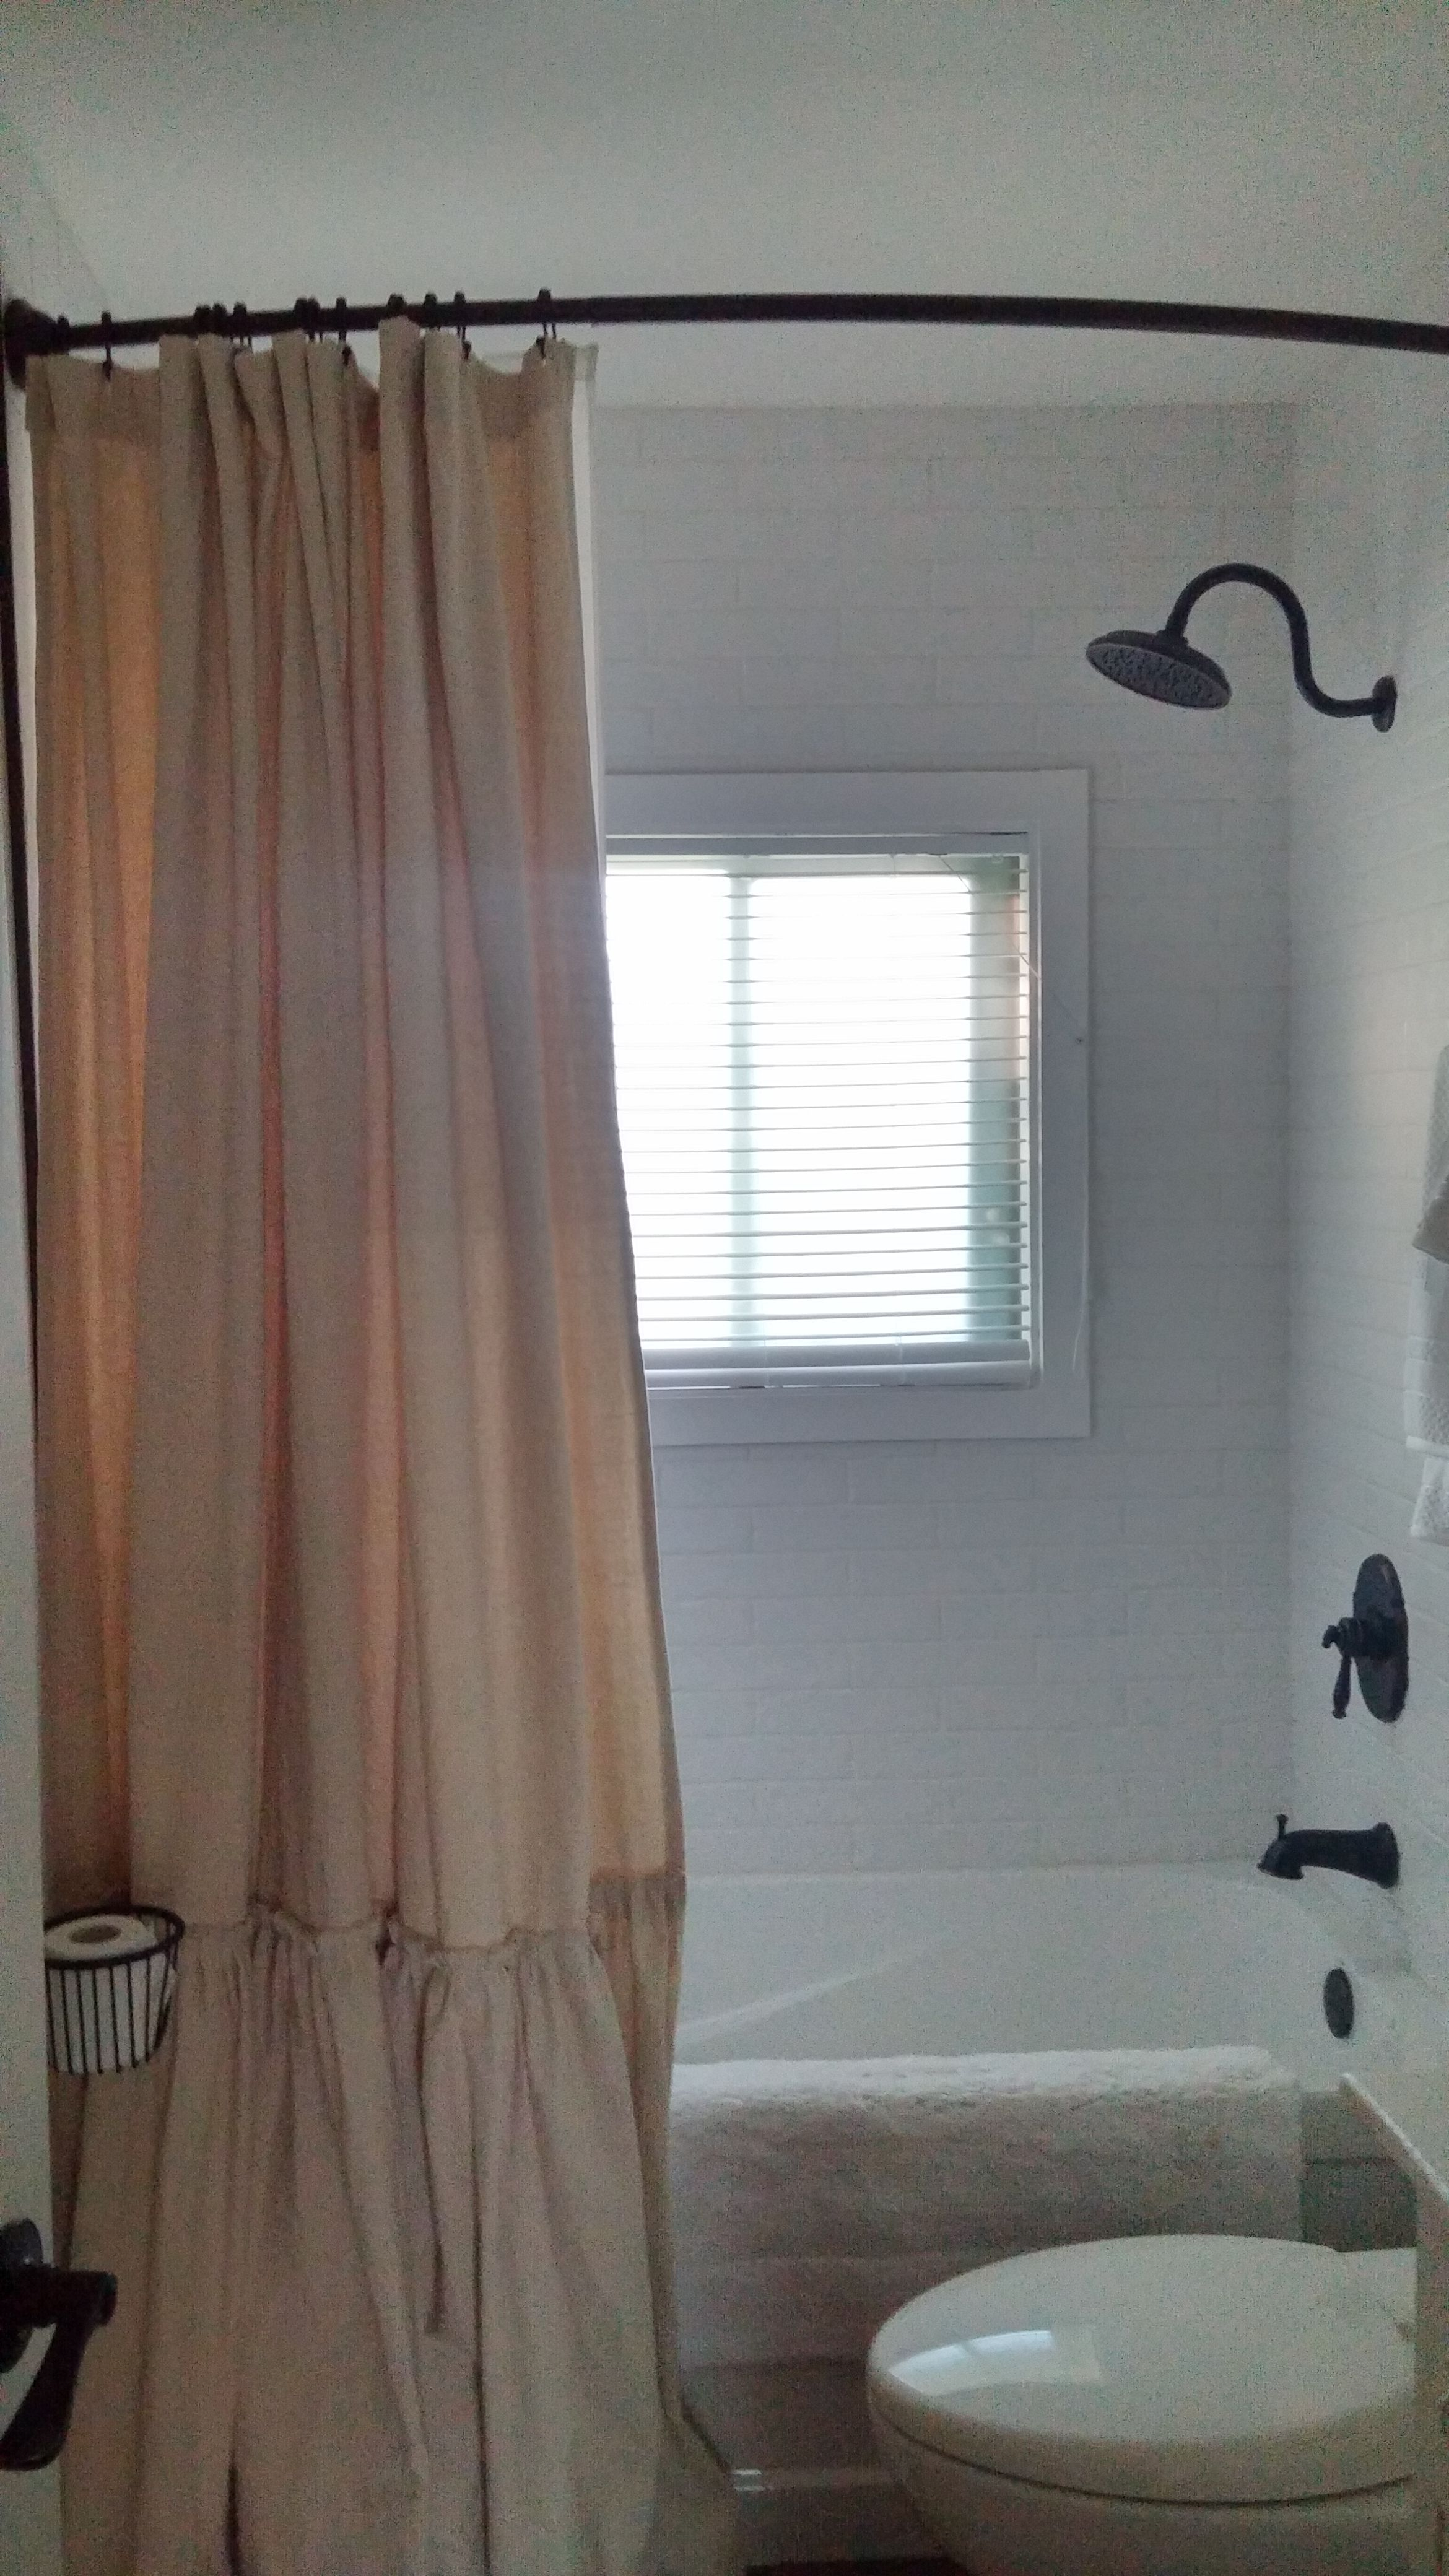 Farmhouse Bathroom Reno Homemade Shower Curtain From Drop Cloths